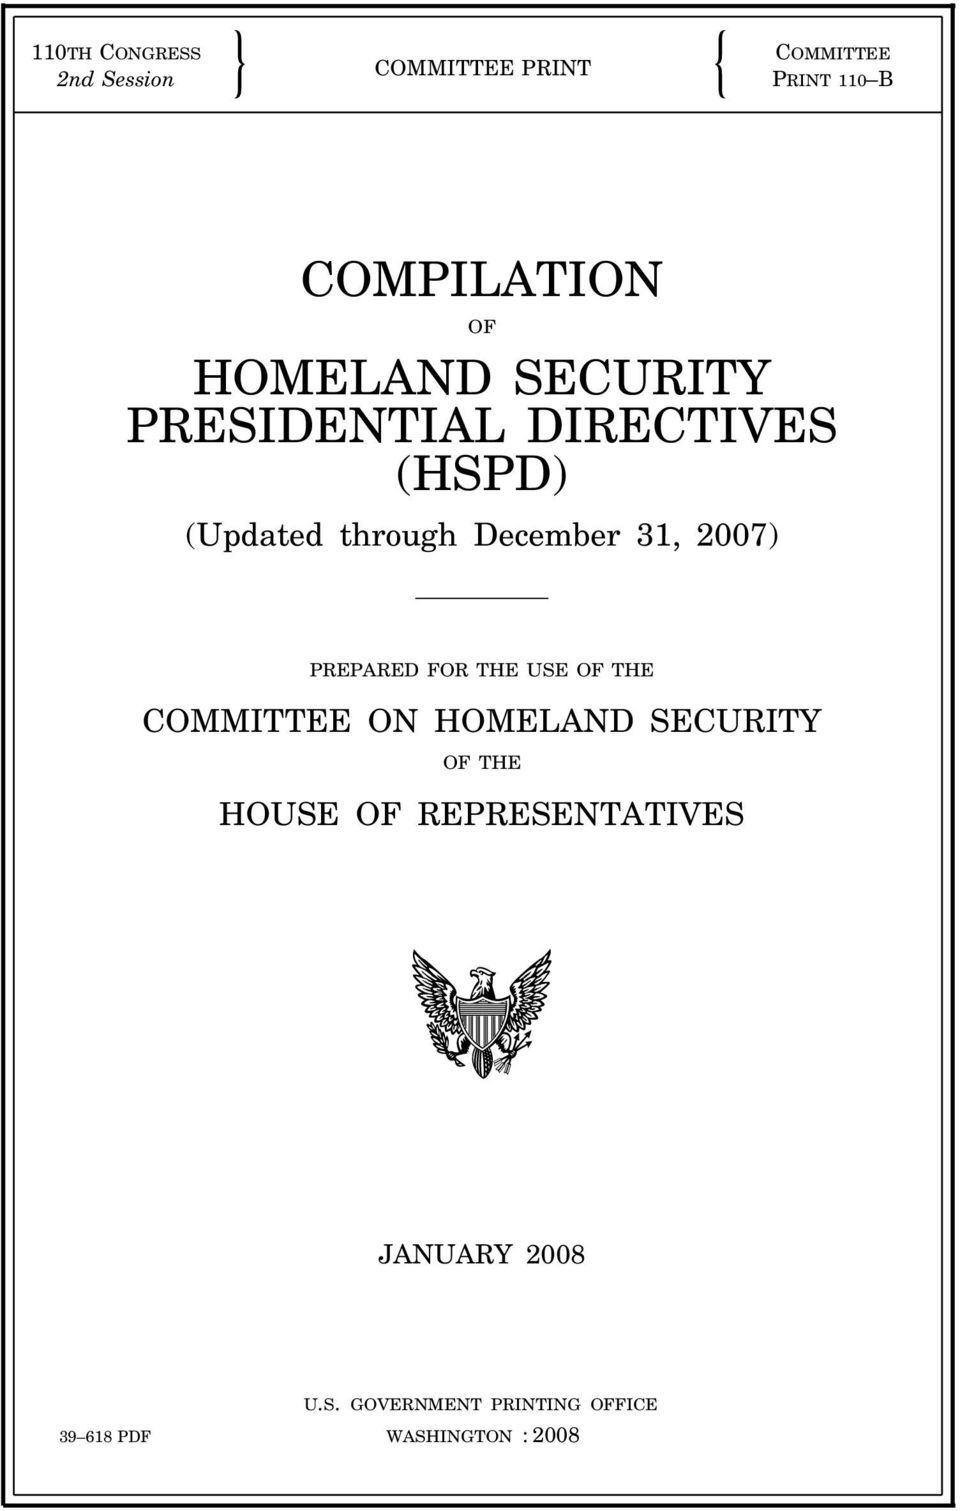 (HSPD) (Updated through December 31, 2007) PREPARED FOR THE USE OF THE COMMITTEE